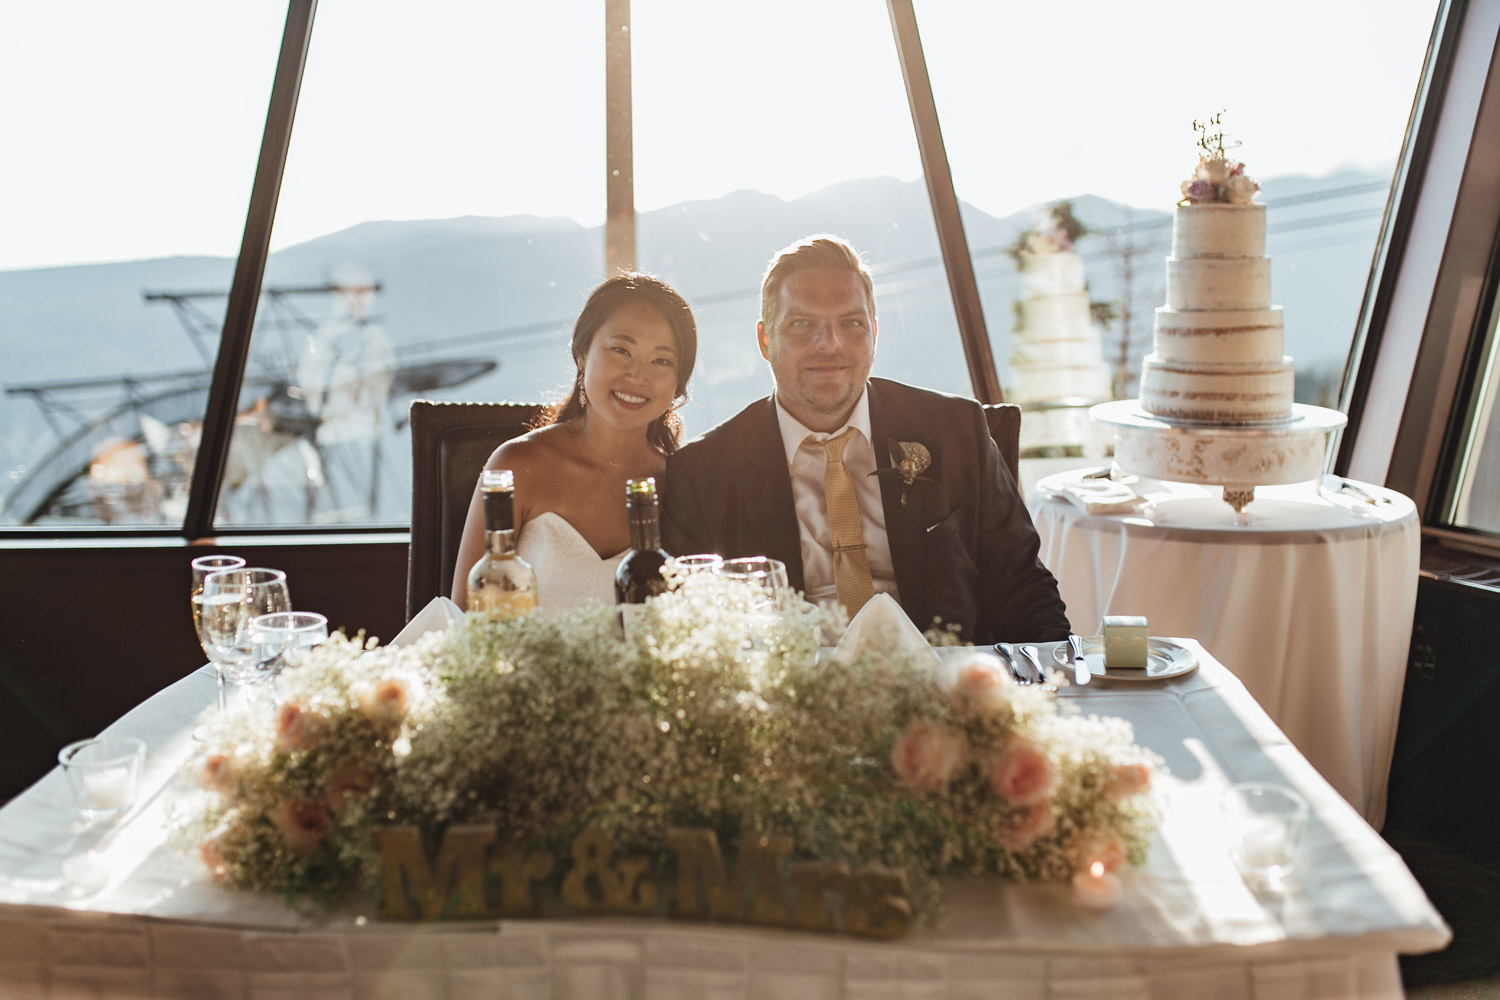 grouse mountain wedding photography in north vancouver bc